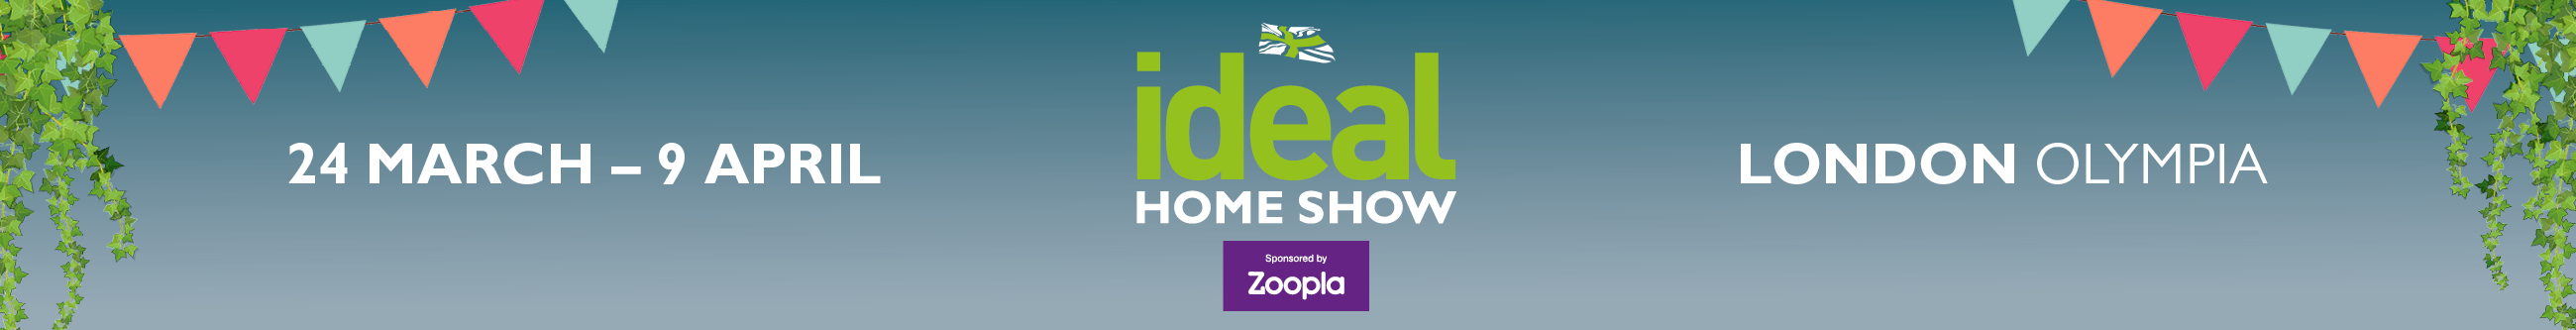 Ideal Home Show 2017 banner